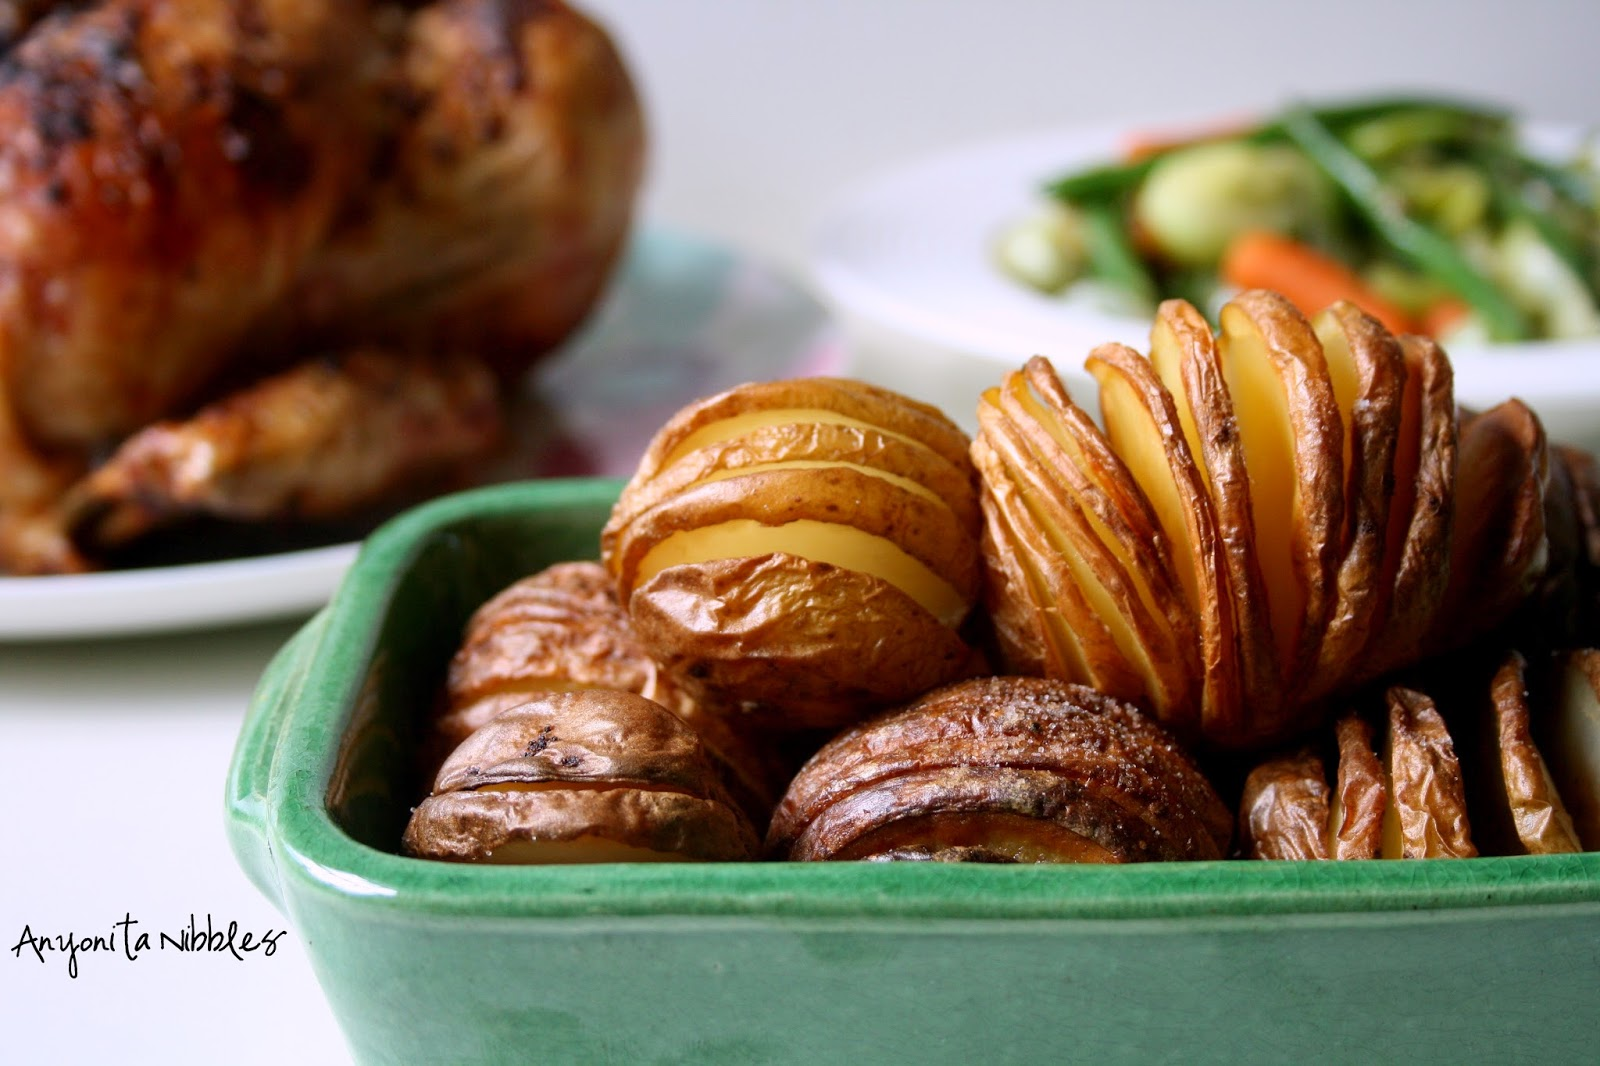 #hassleback potatoes with roast chicken and sauteed spring veg for #mothersdaydinner | Anyonita Nibbles